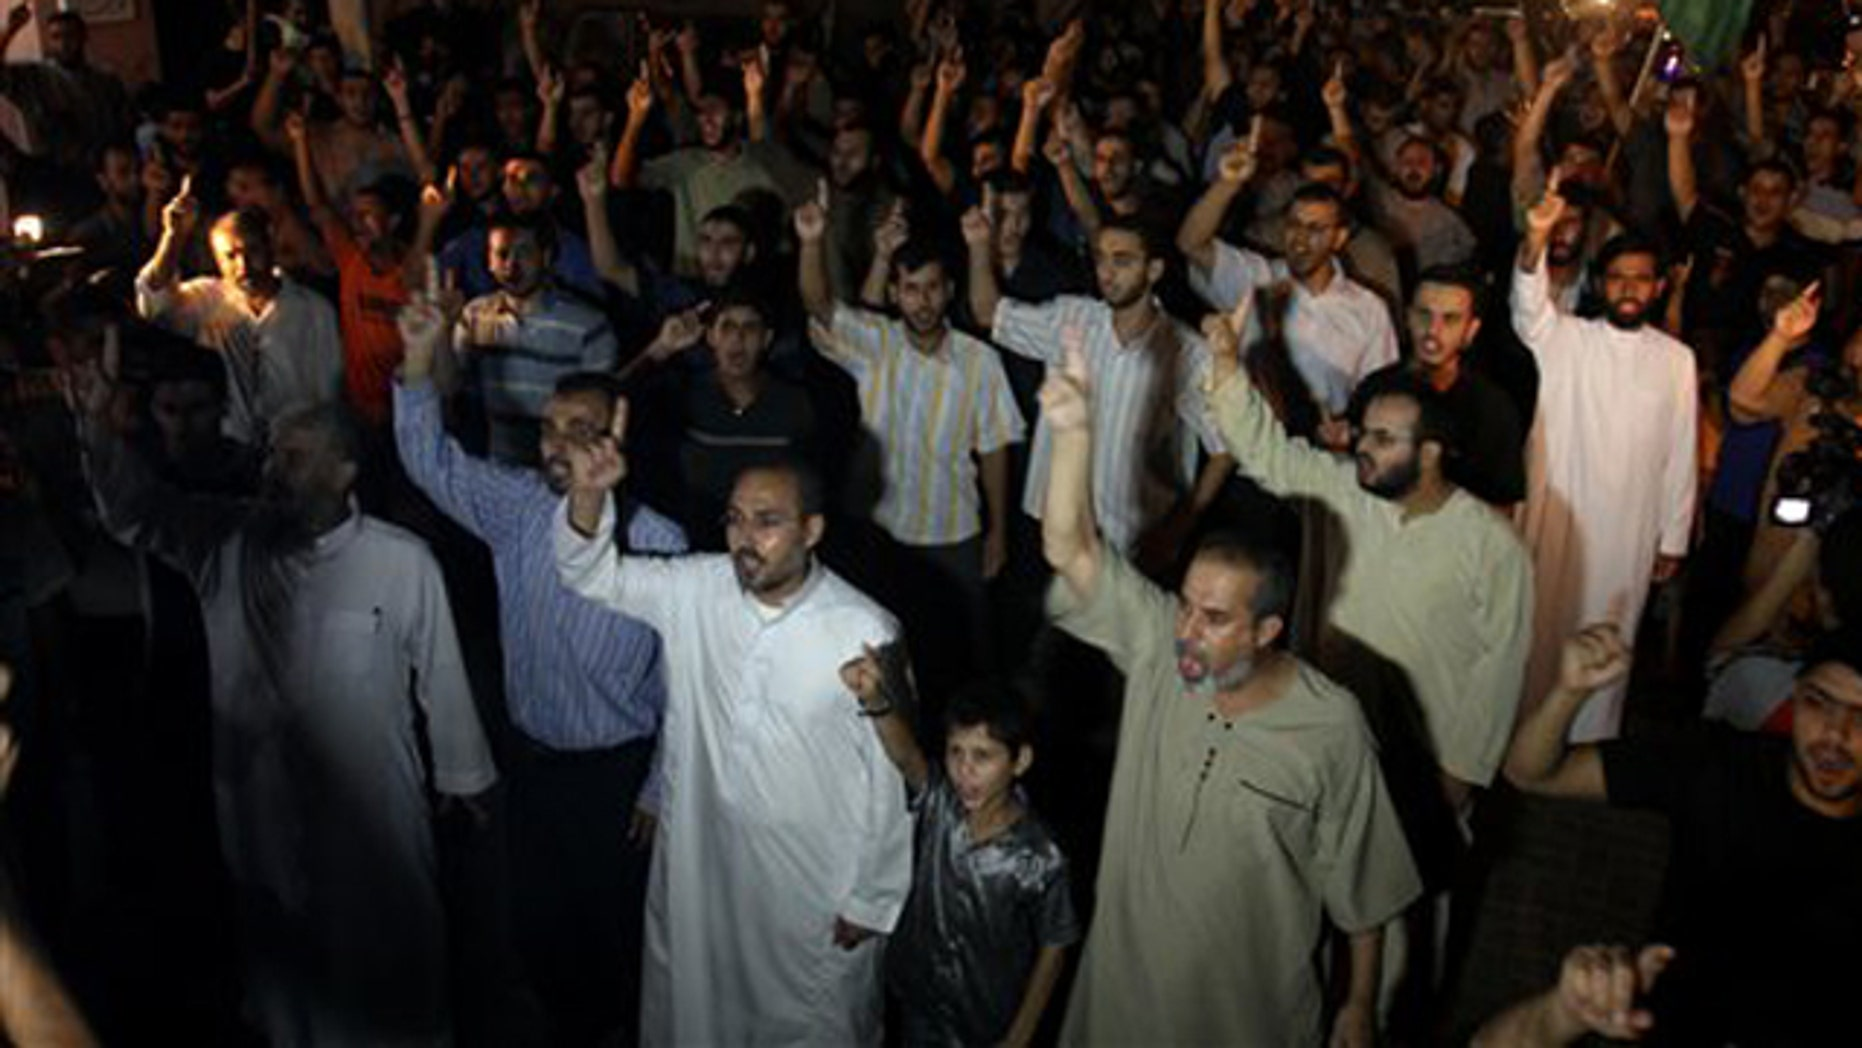 Palestinian supporters of Hamas raise their right index fingers in the air as a sign of loyalty to the group during a Gaza Strip rally to celebrate a militant attack in the southern West Bank Aug. 31. (AP Photo)